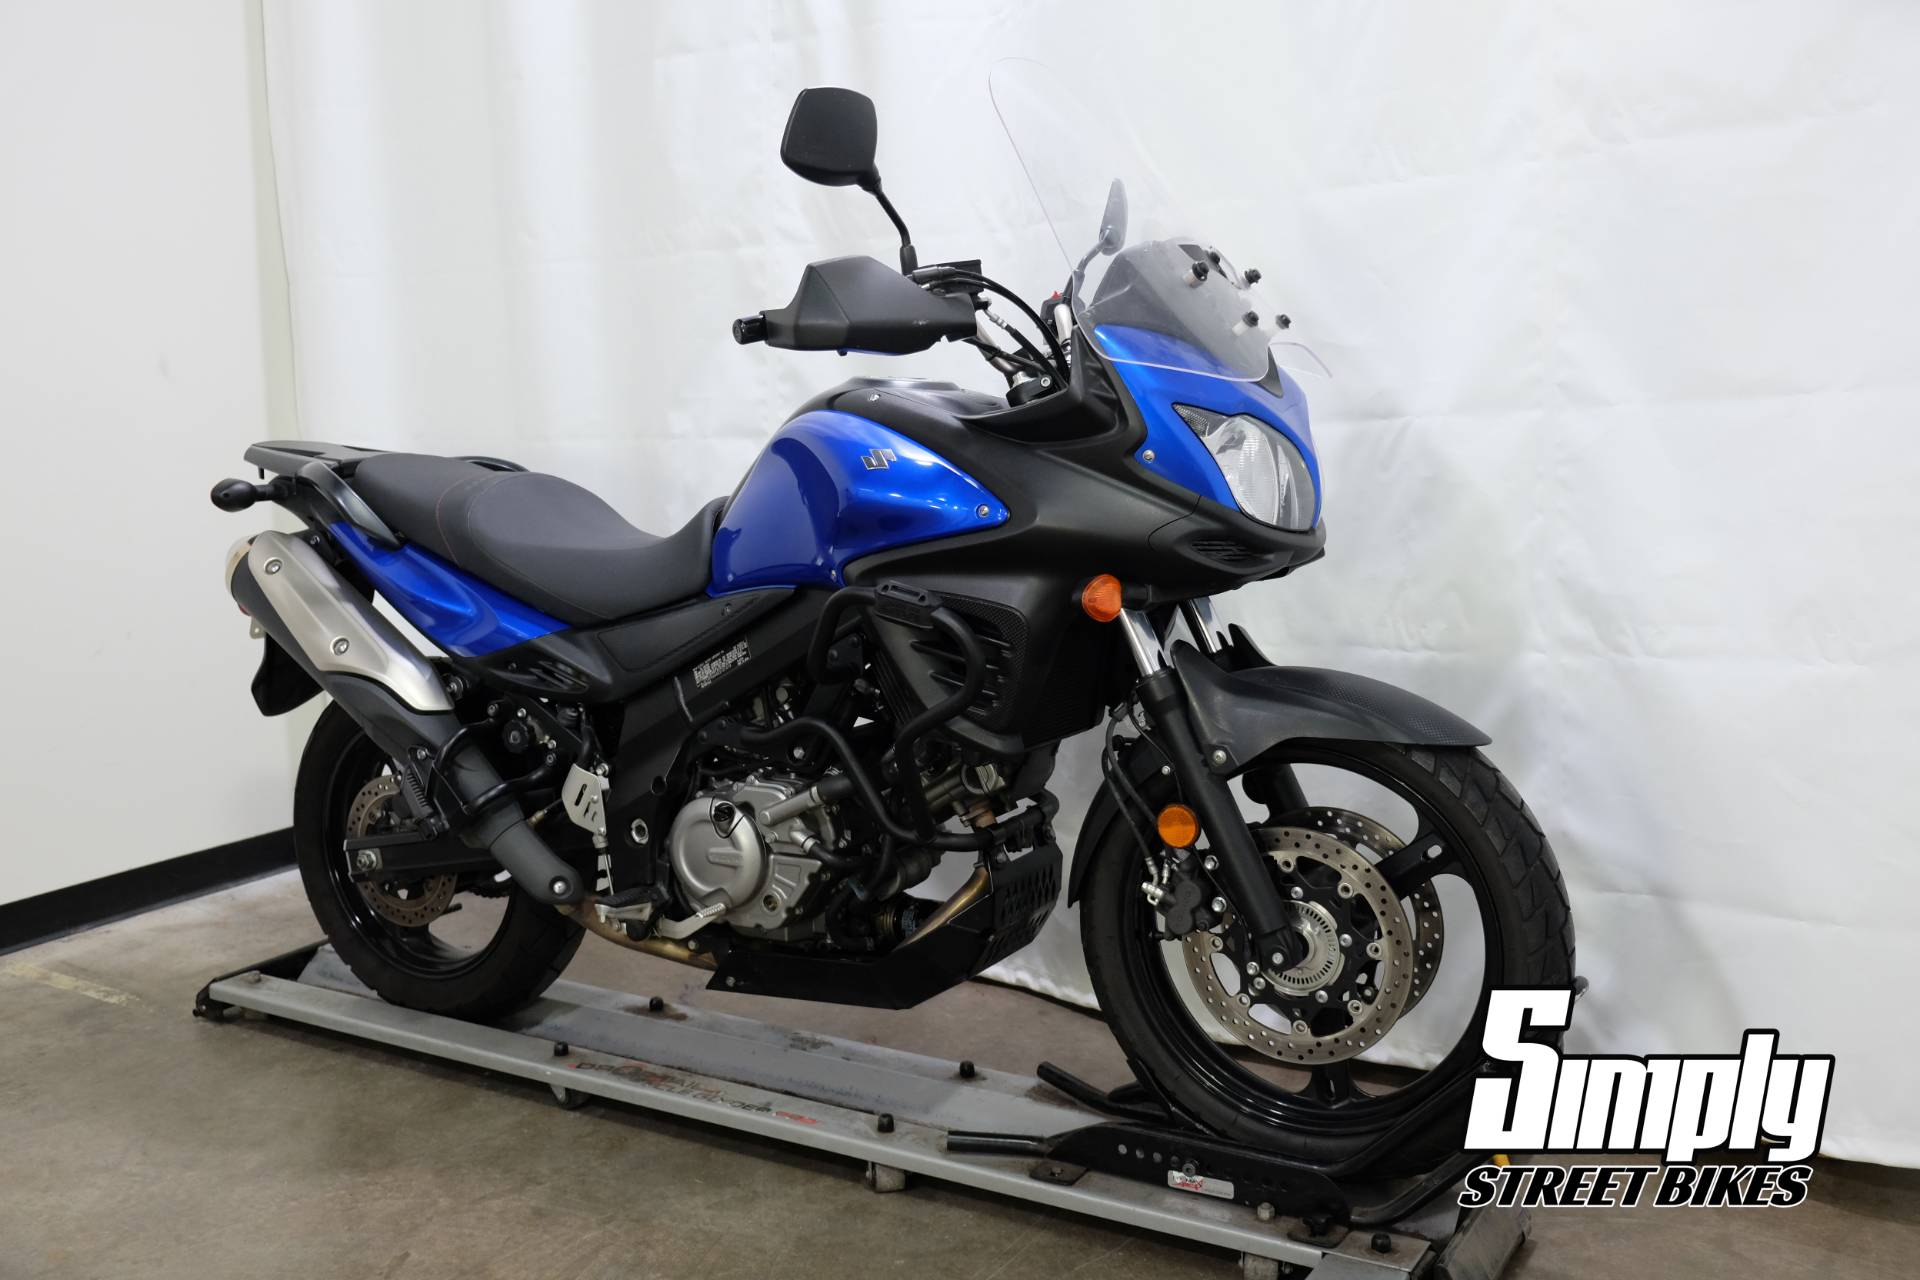 2013 Suzuki V-Strom 650 ABS in Eden Prairie, Minnesota - Photo 2